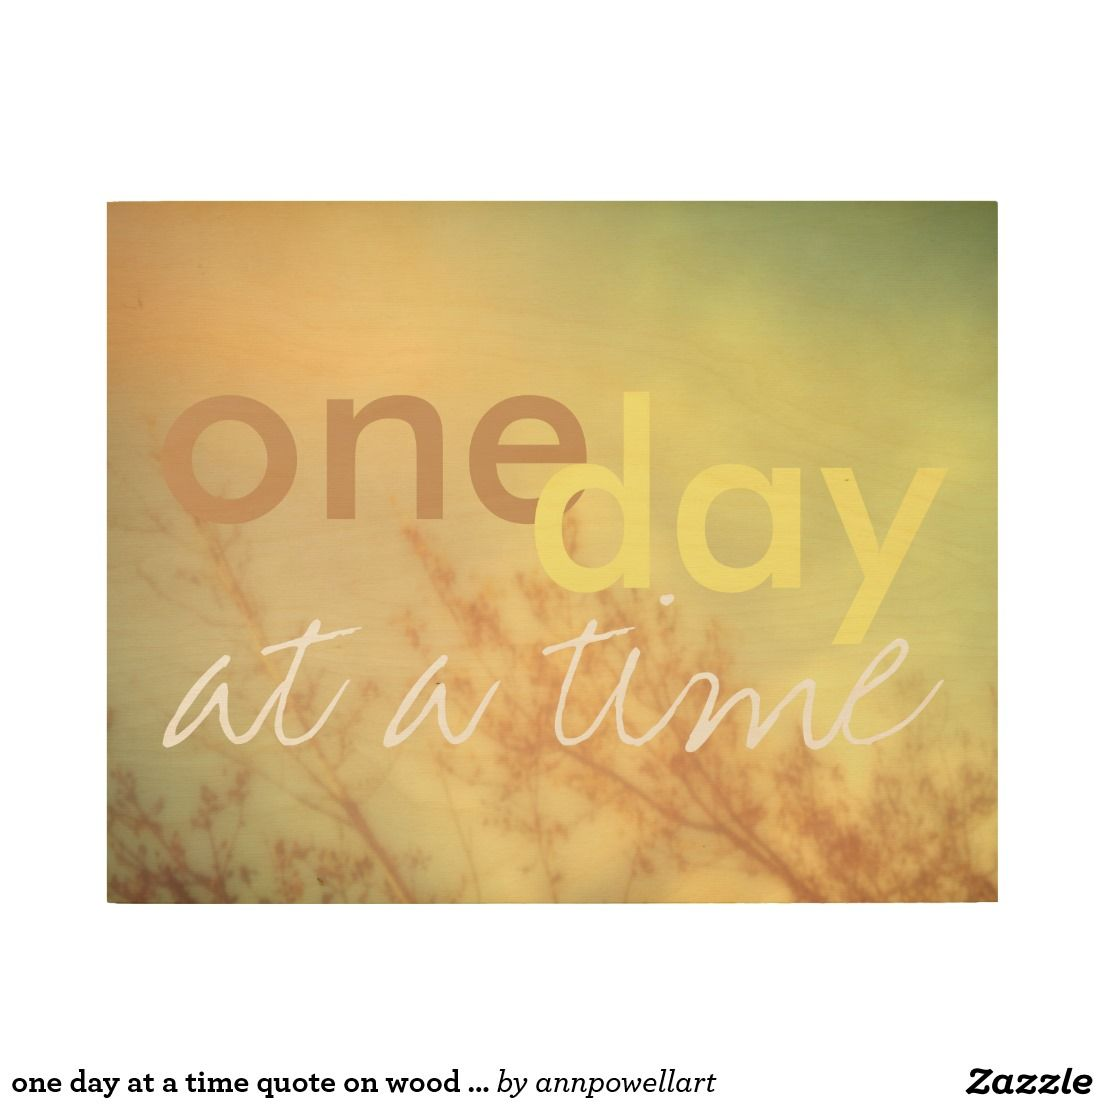 One day at a time quote on wood panel | Wood print, Prints and Art ...